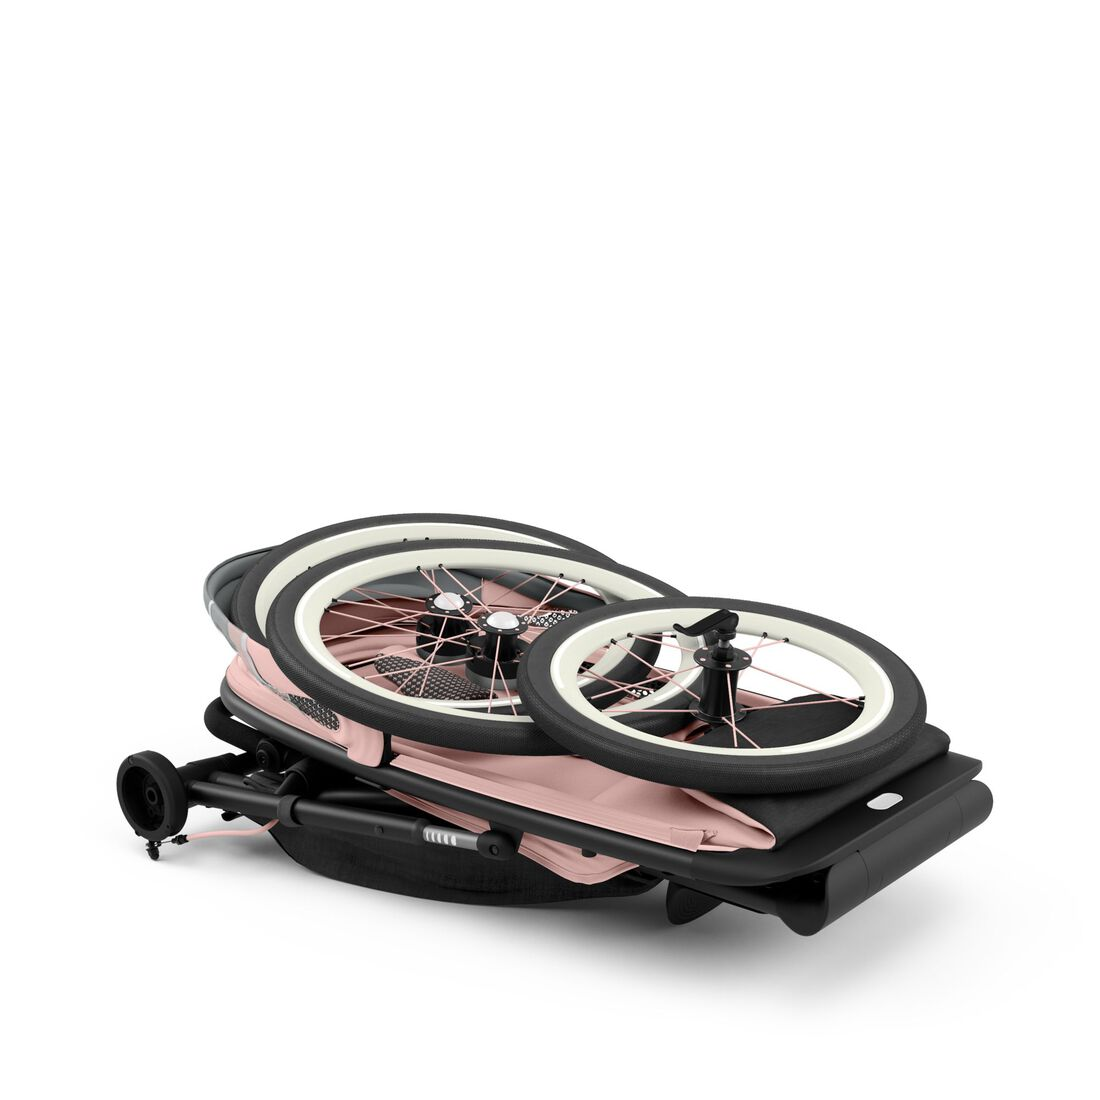 CYBEX Avi Seat Pack - Silver Pink in Silver Pink large image number 6